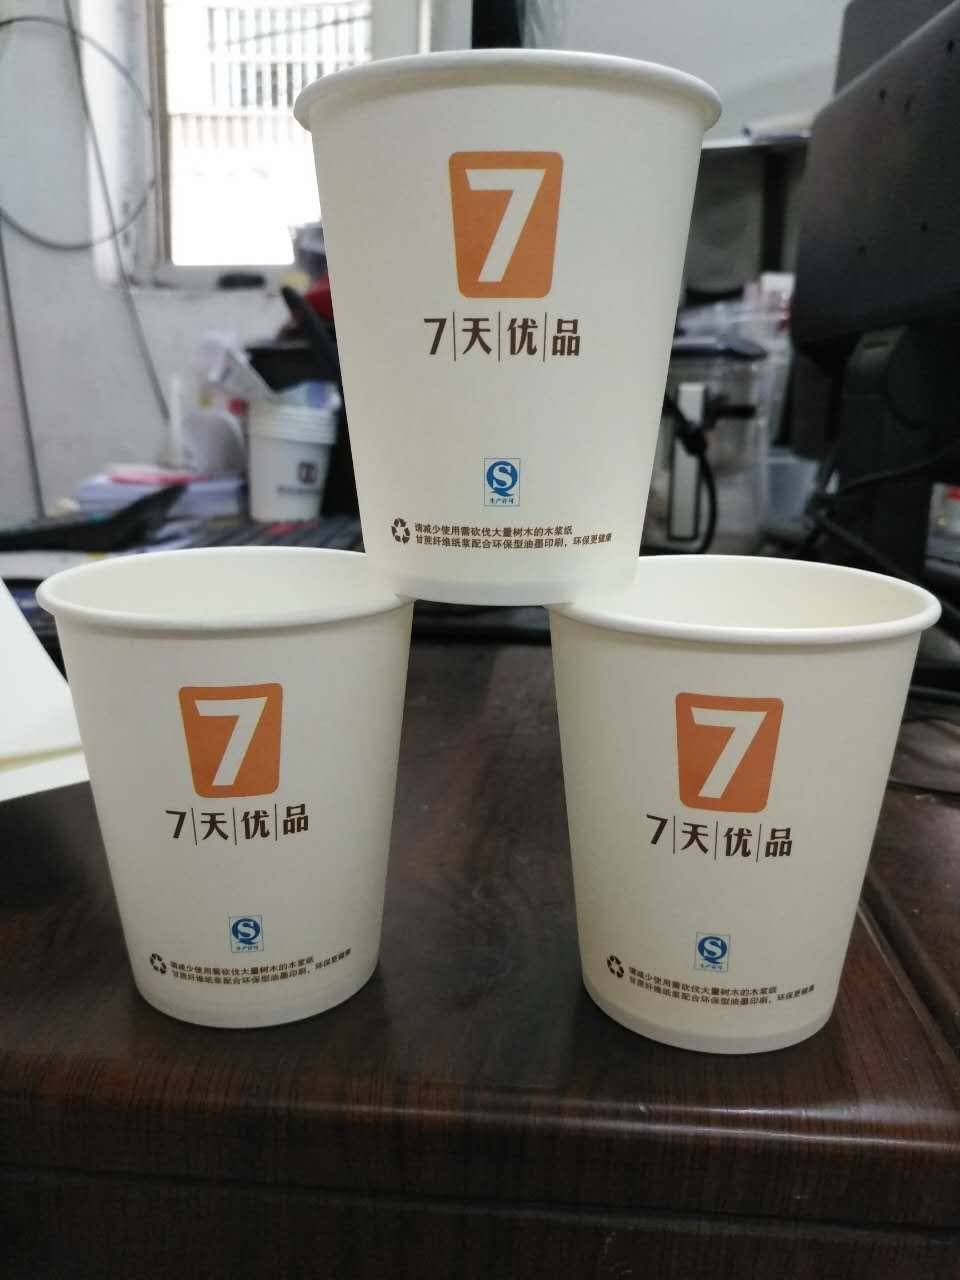 Paper Cup Disposable Paper Cup Hotel Disposable Cup Period 7 Days Inn Hotel Property Customization Free Edition